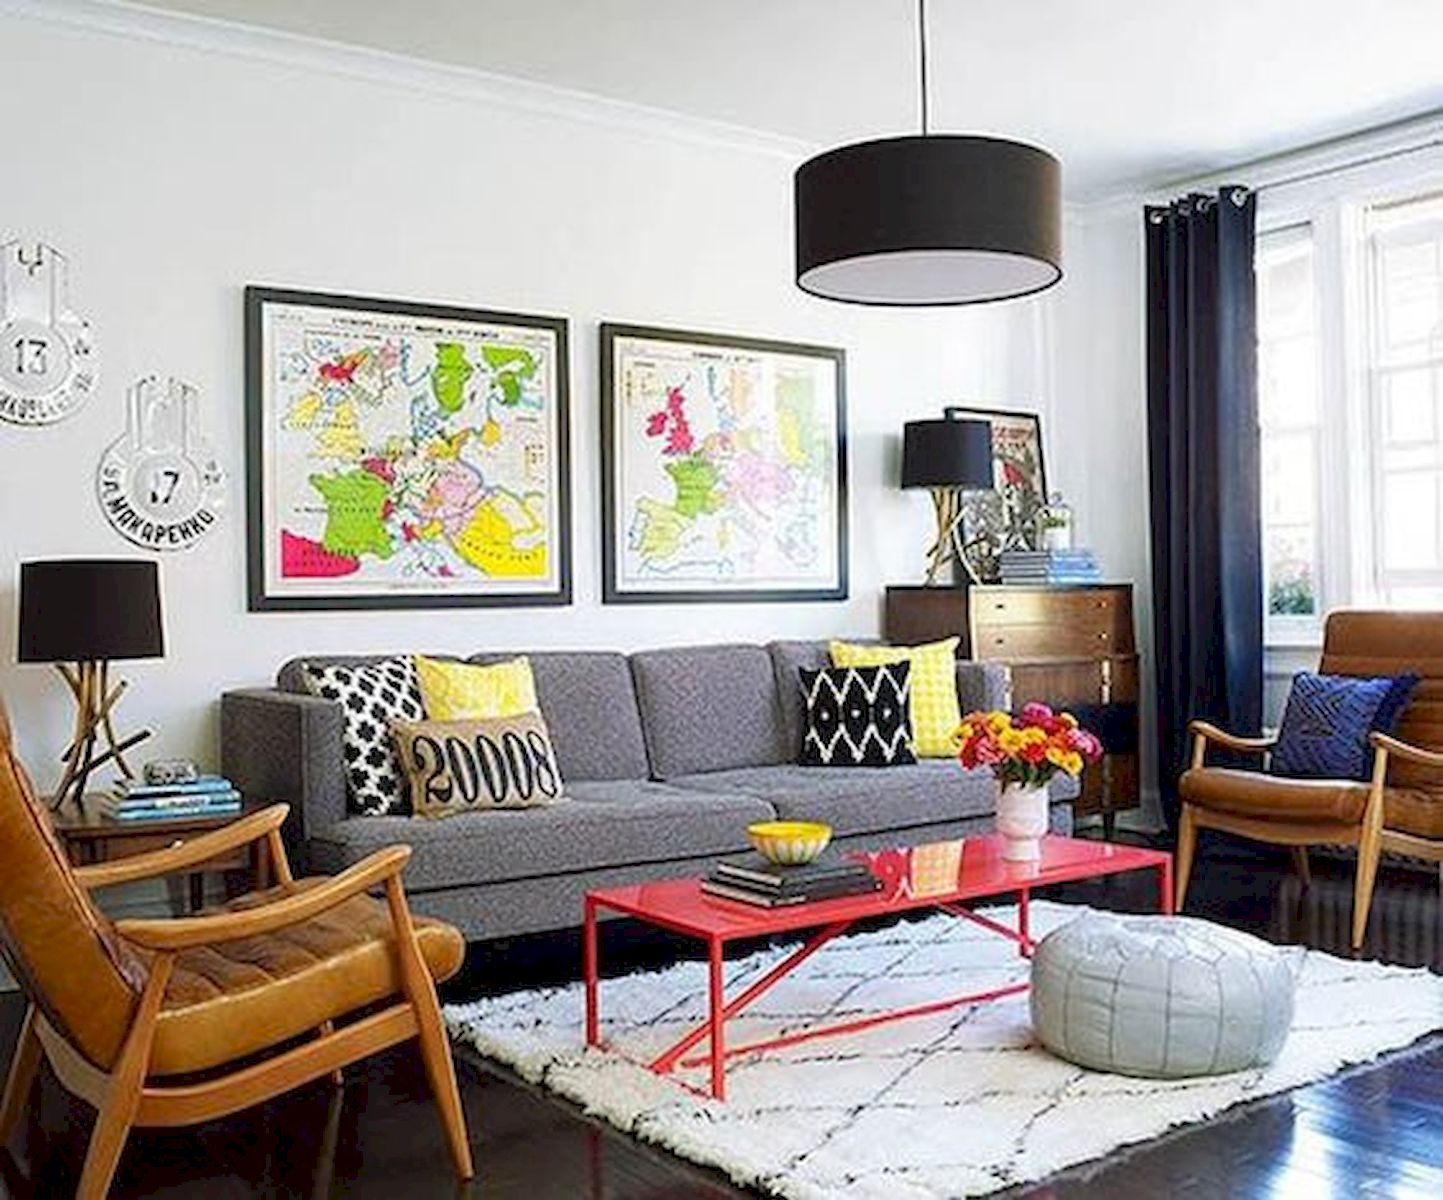 33 Amazing Small Apartment Decorating Ideas On A Budget 33decor